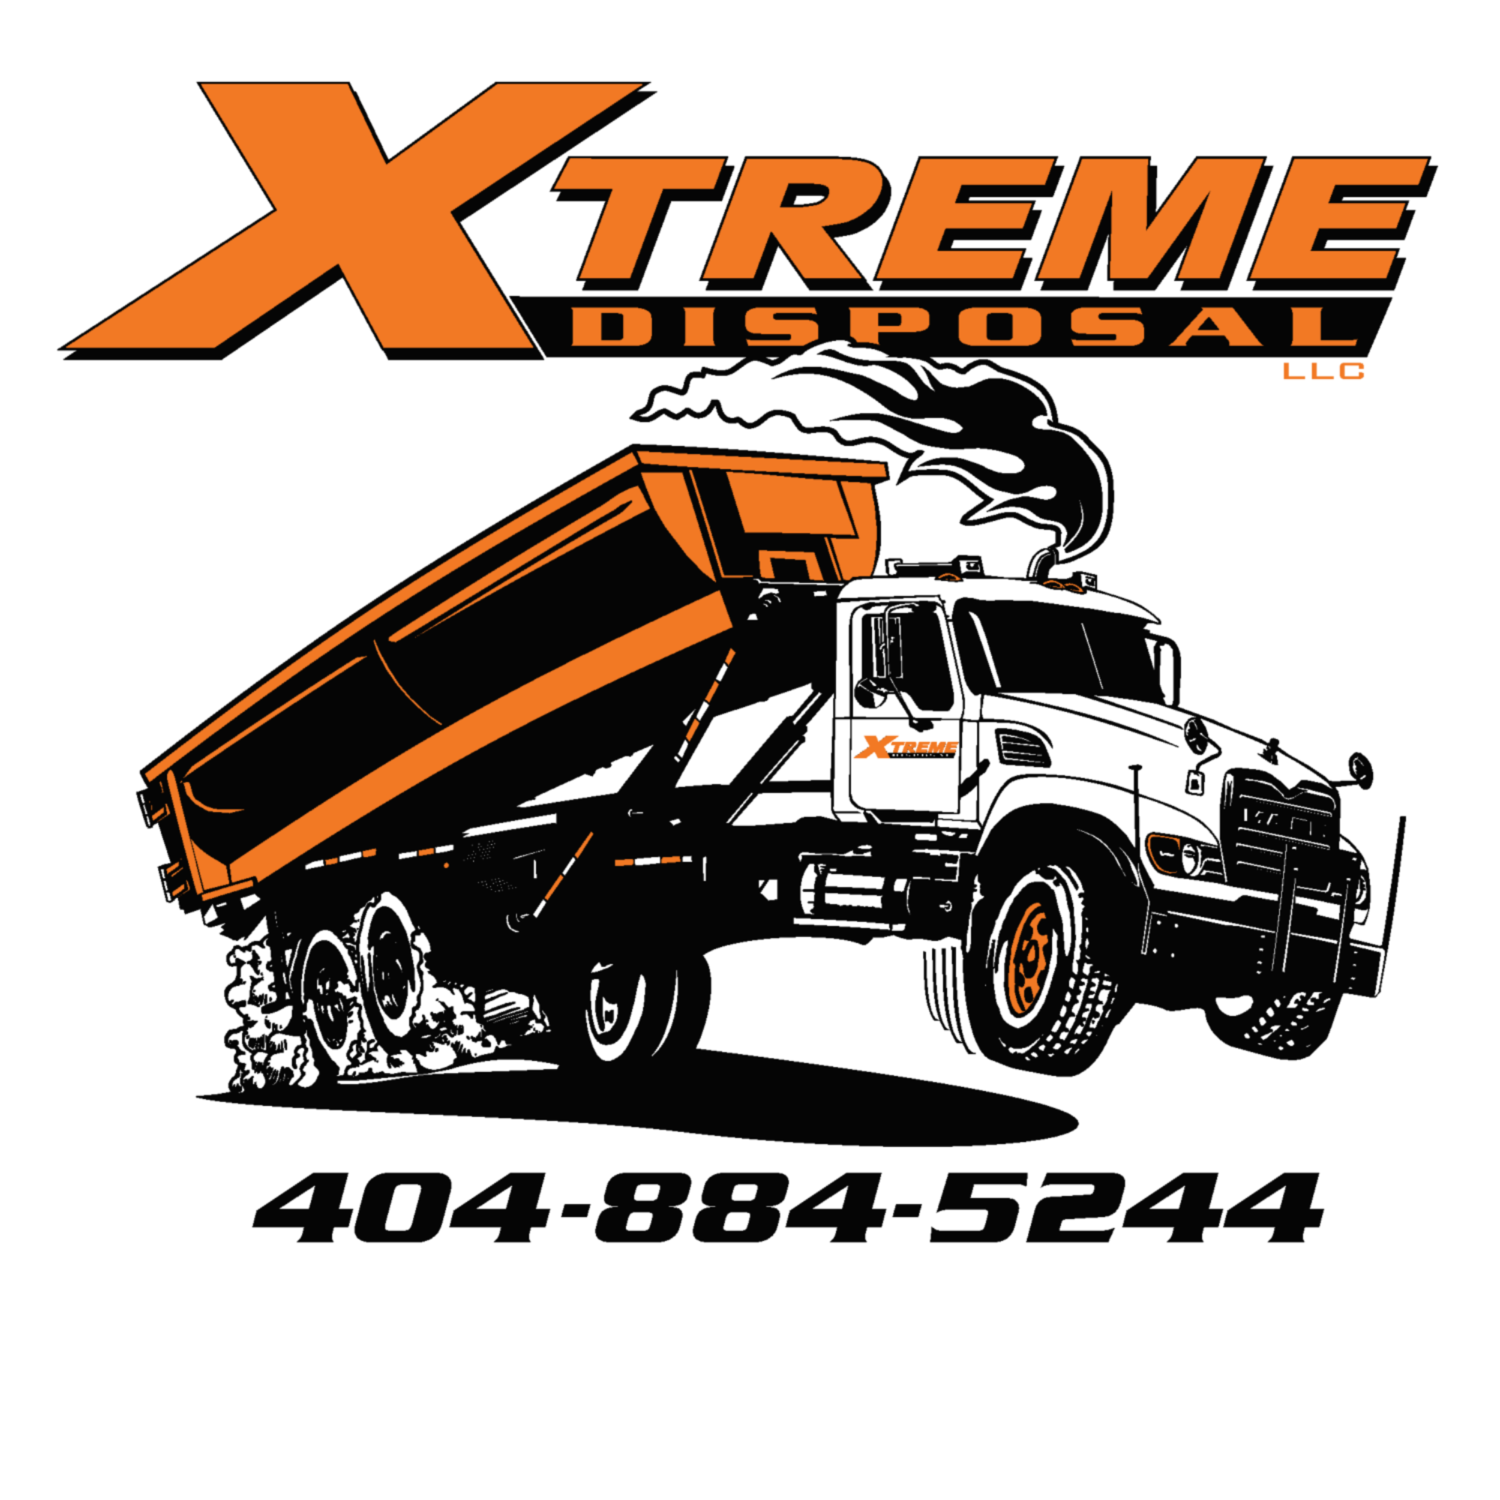 Xtreme Disposal, LLC.